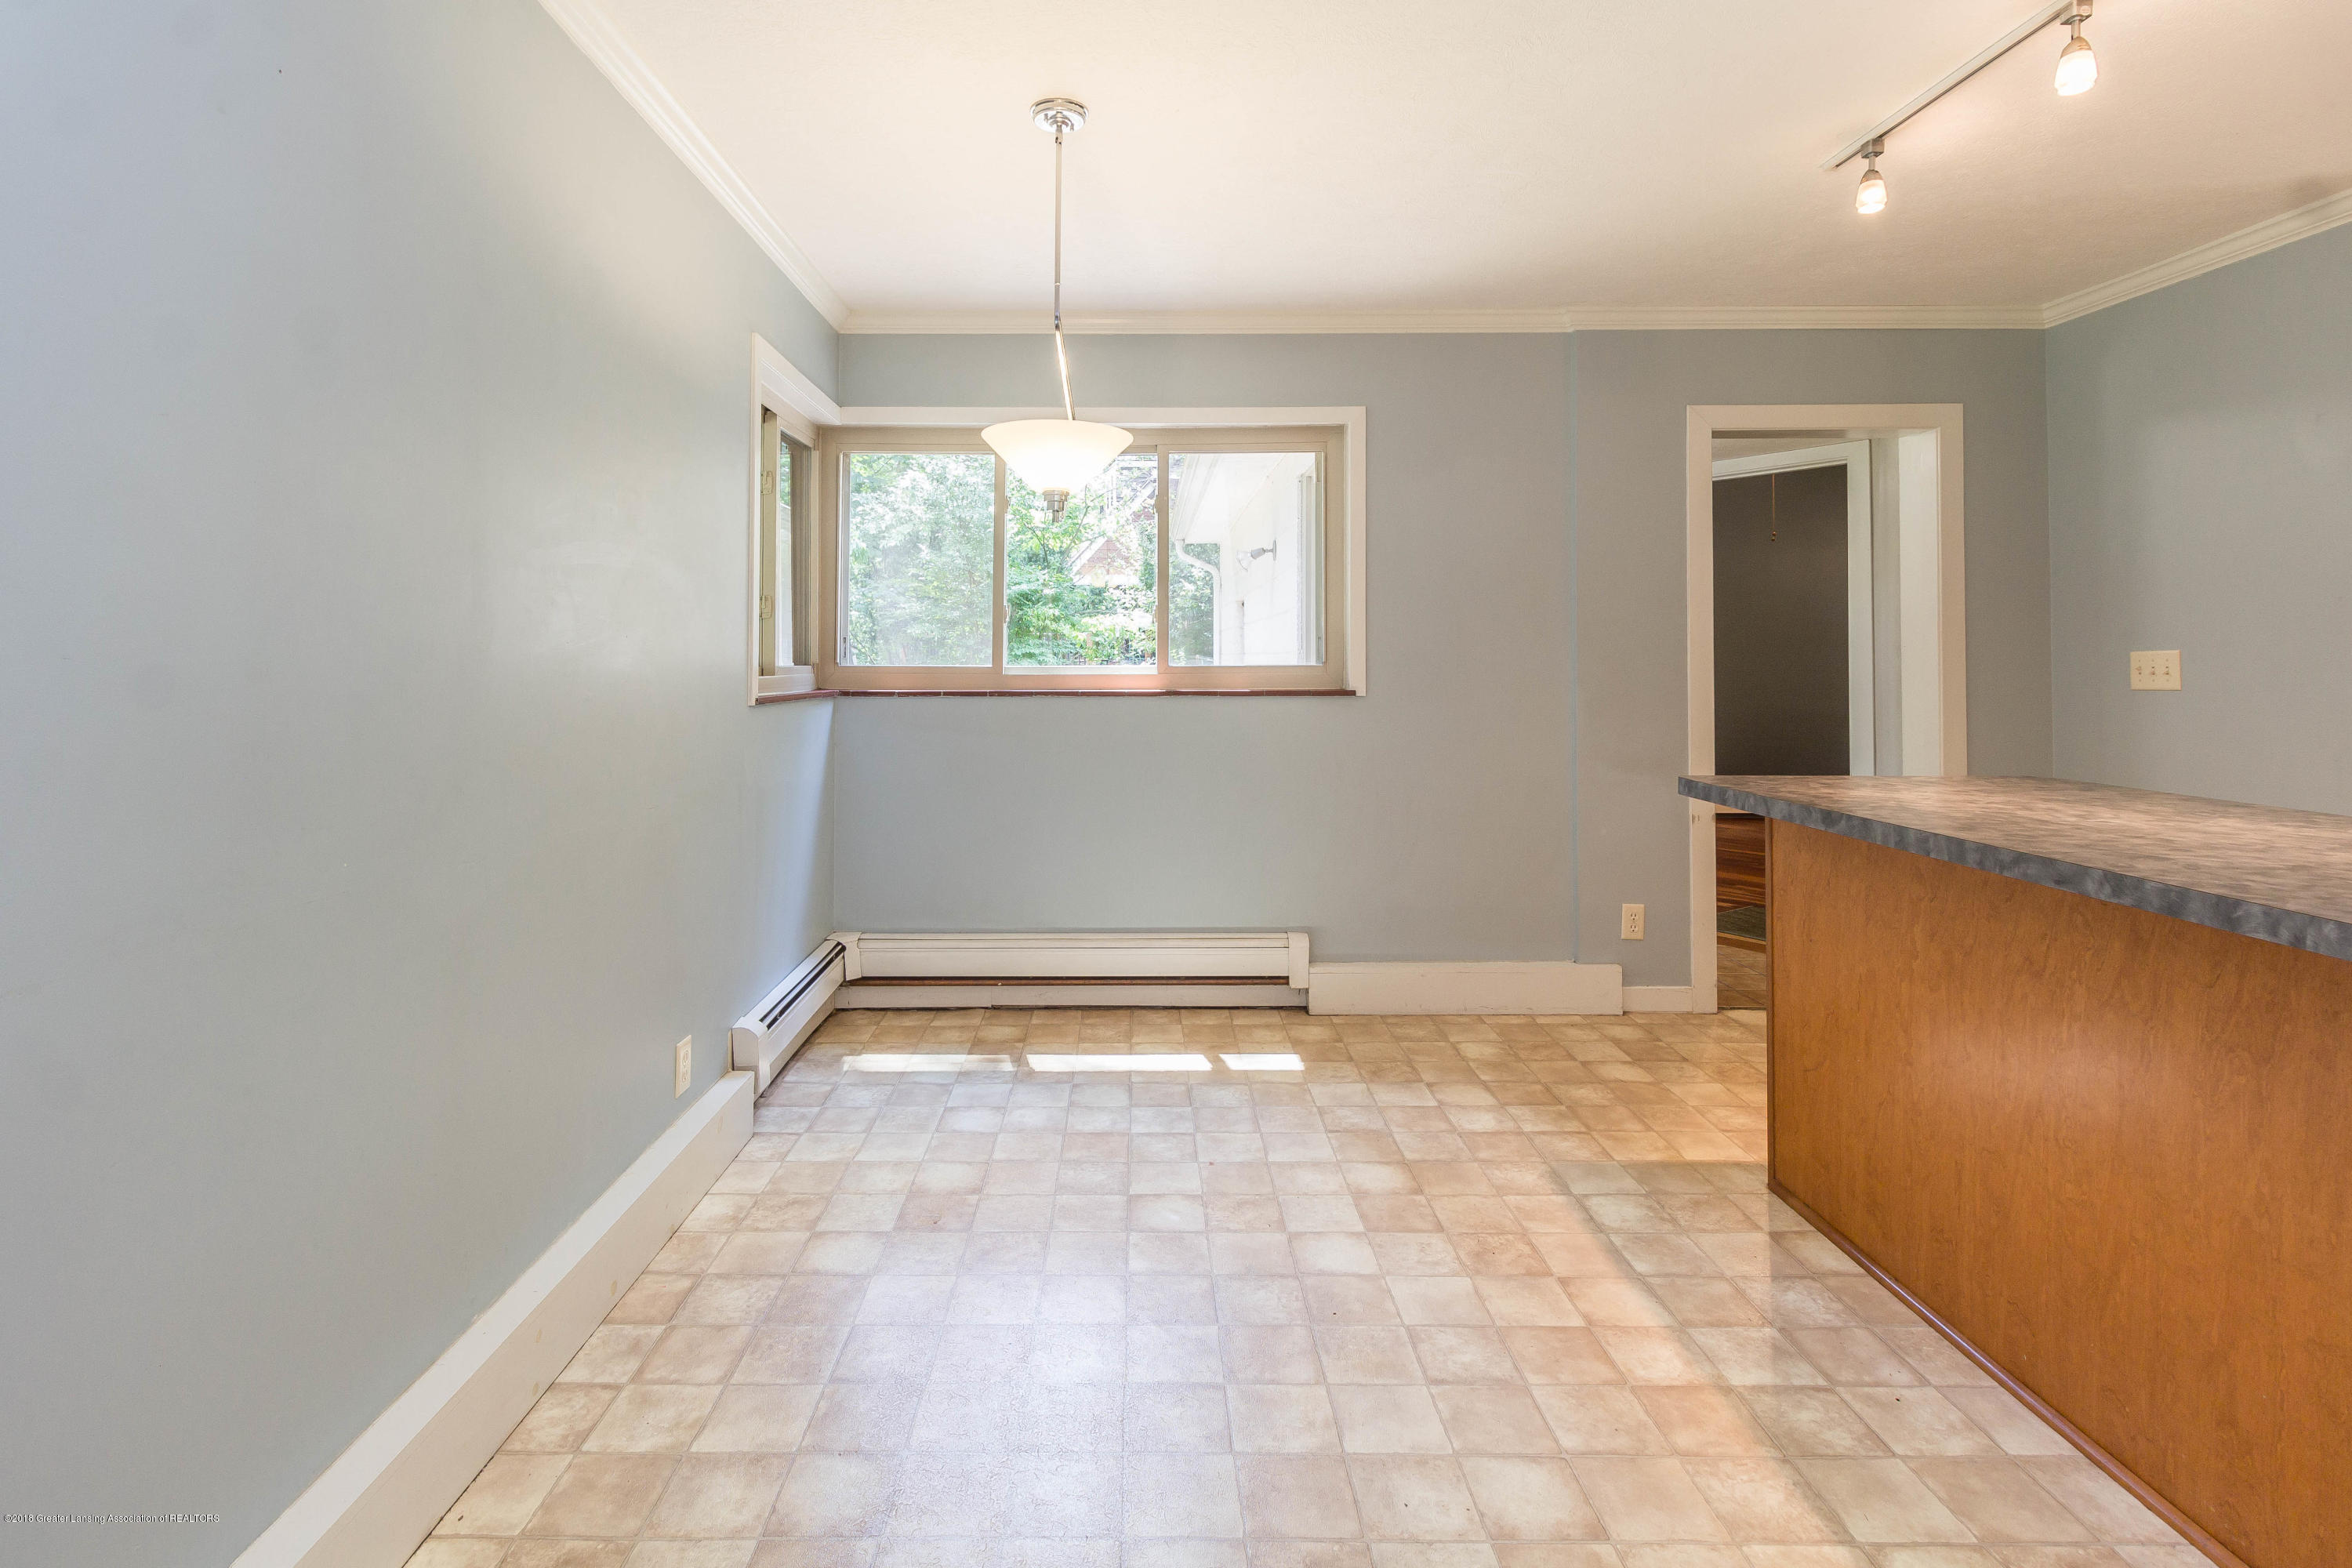 6038 Abbot Rd - Dining area - 13